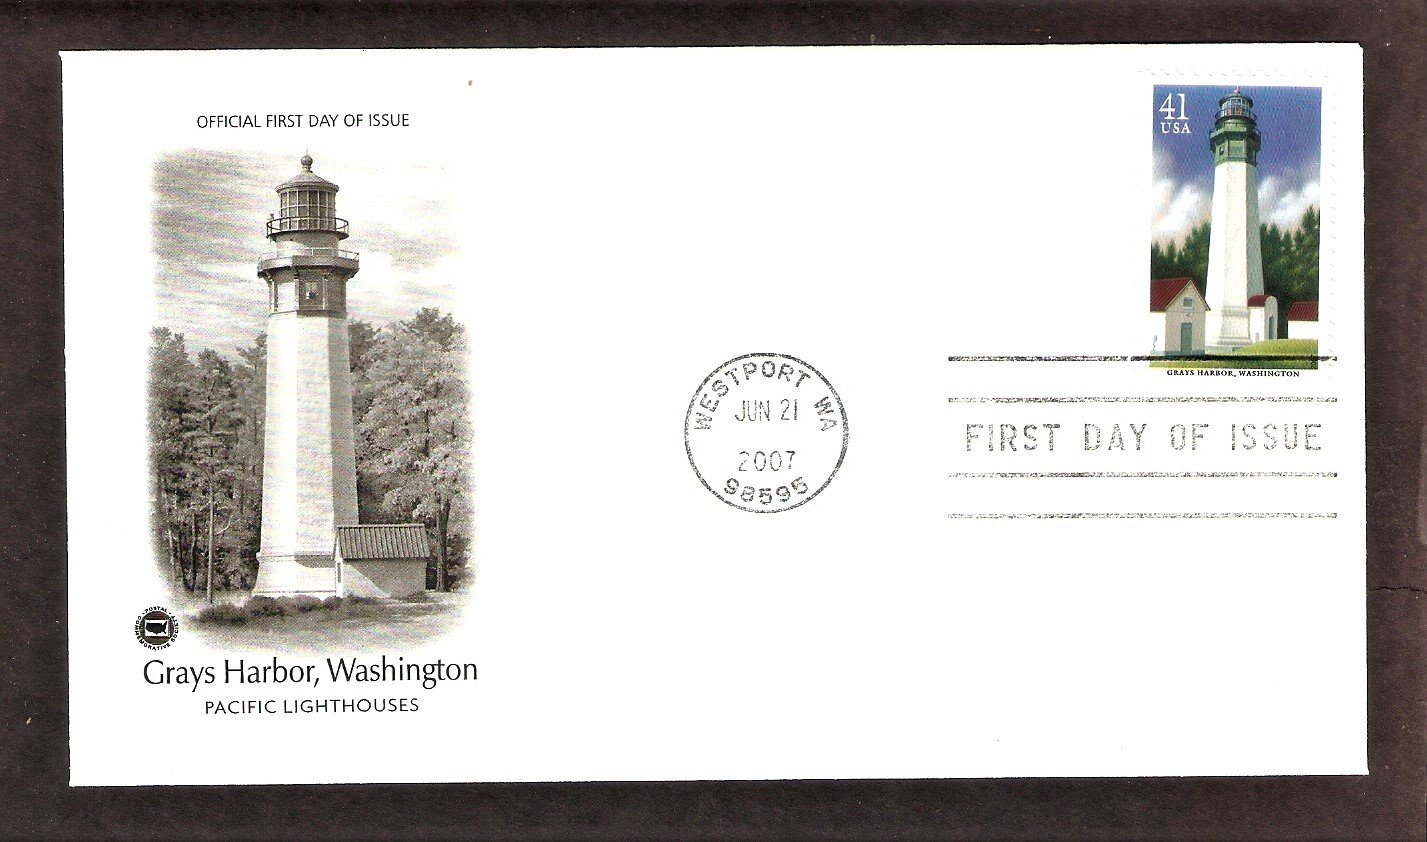 Pacific Lighthouses, Grays Harbor, Washington, PCS, First Issue USA